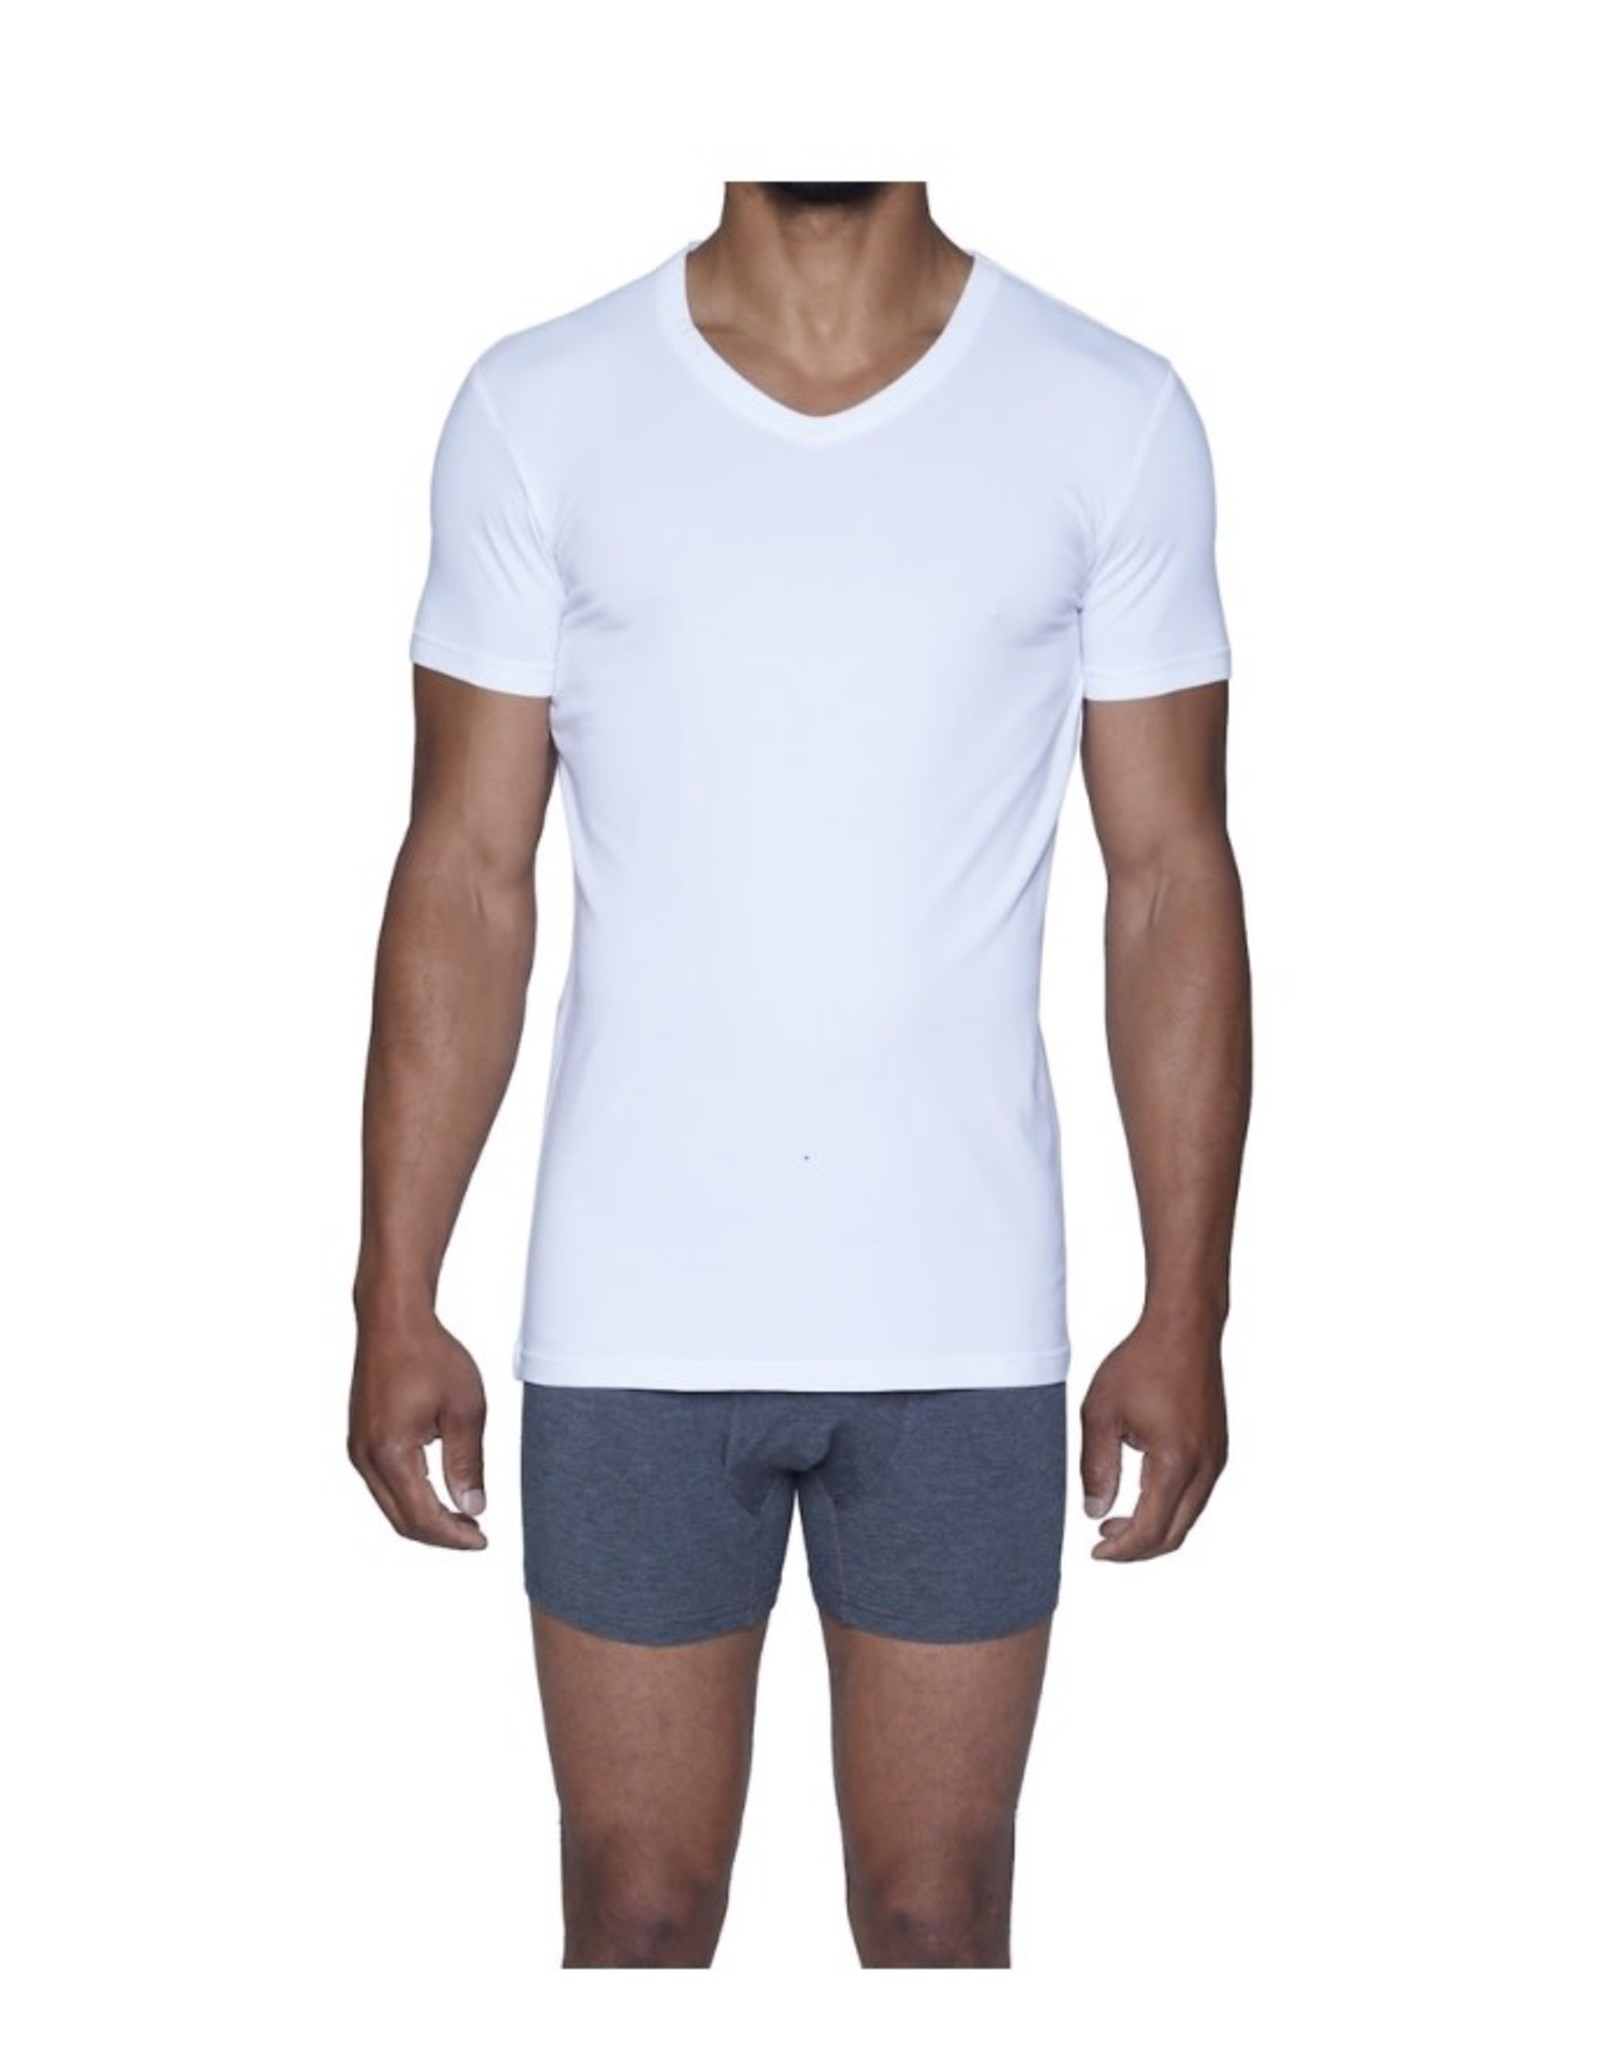 Wood Underwear WD V-Neck T-Shirt